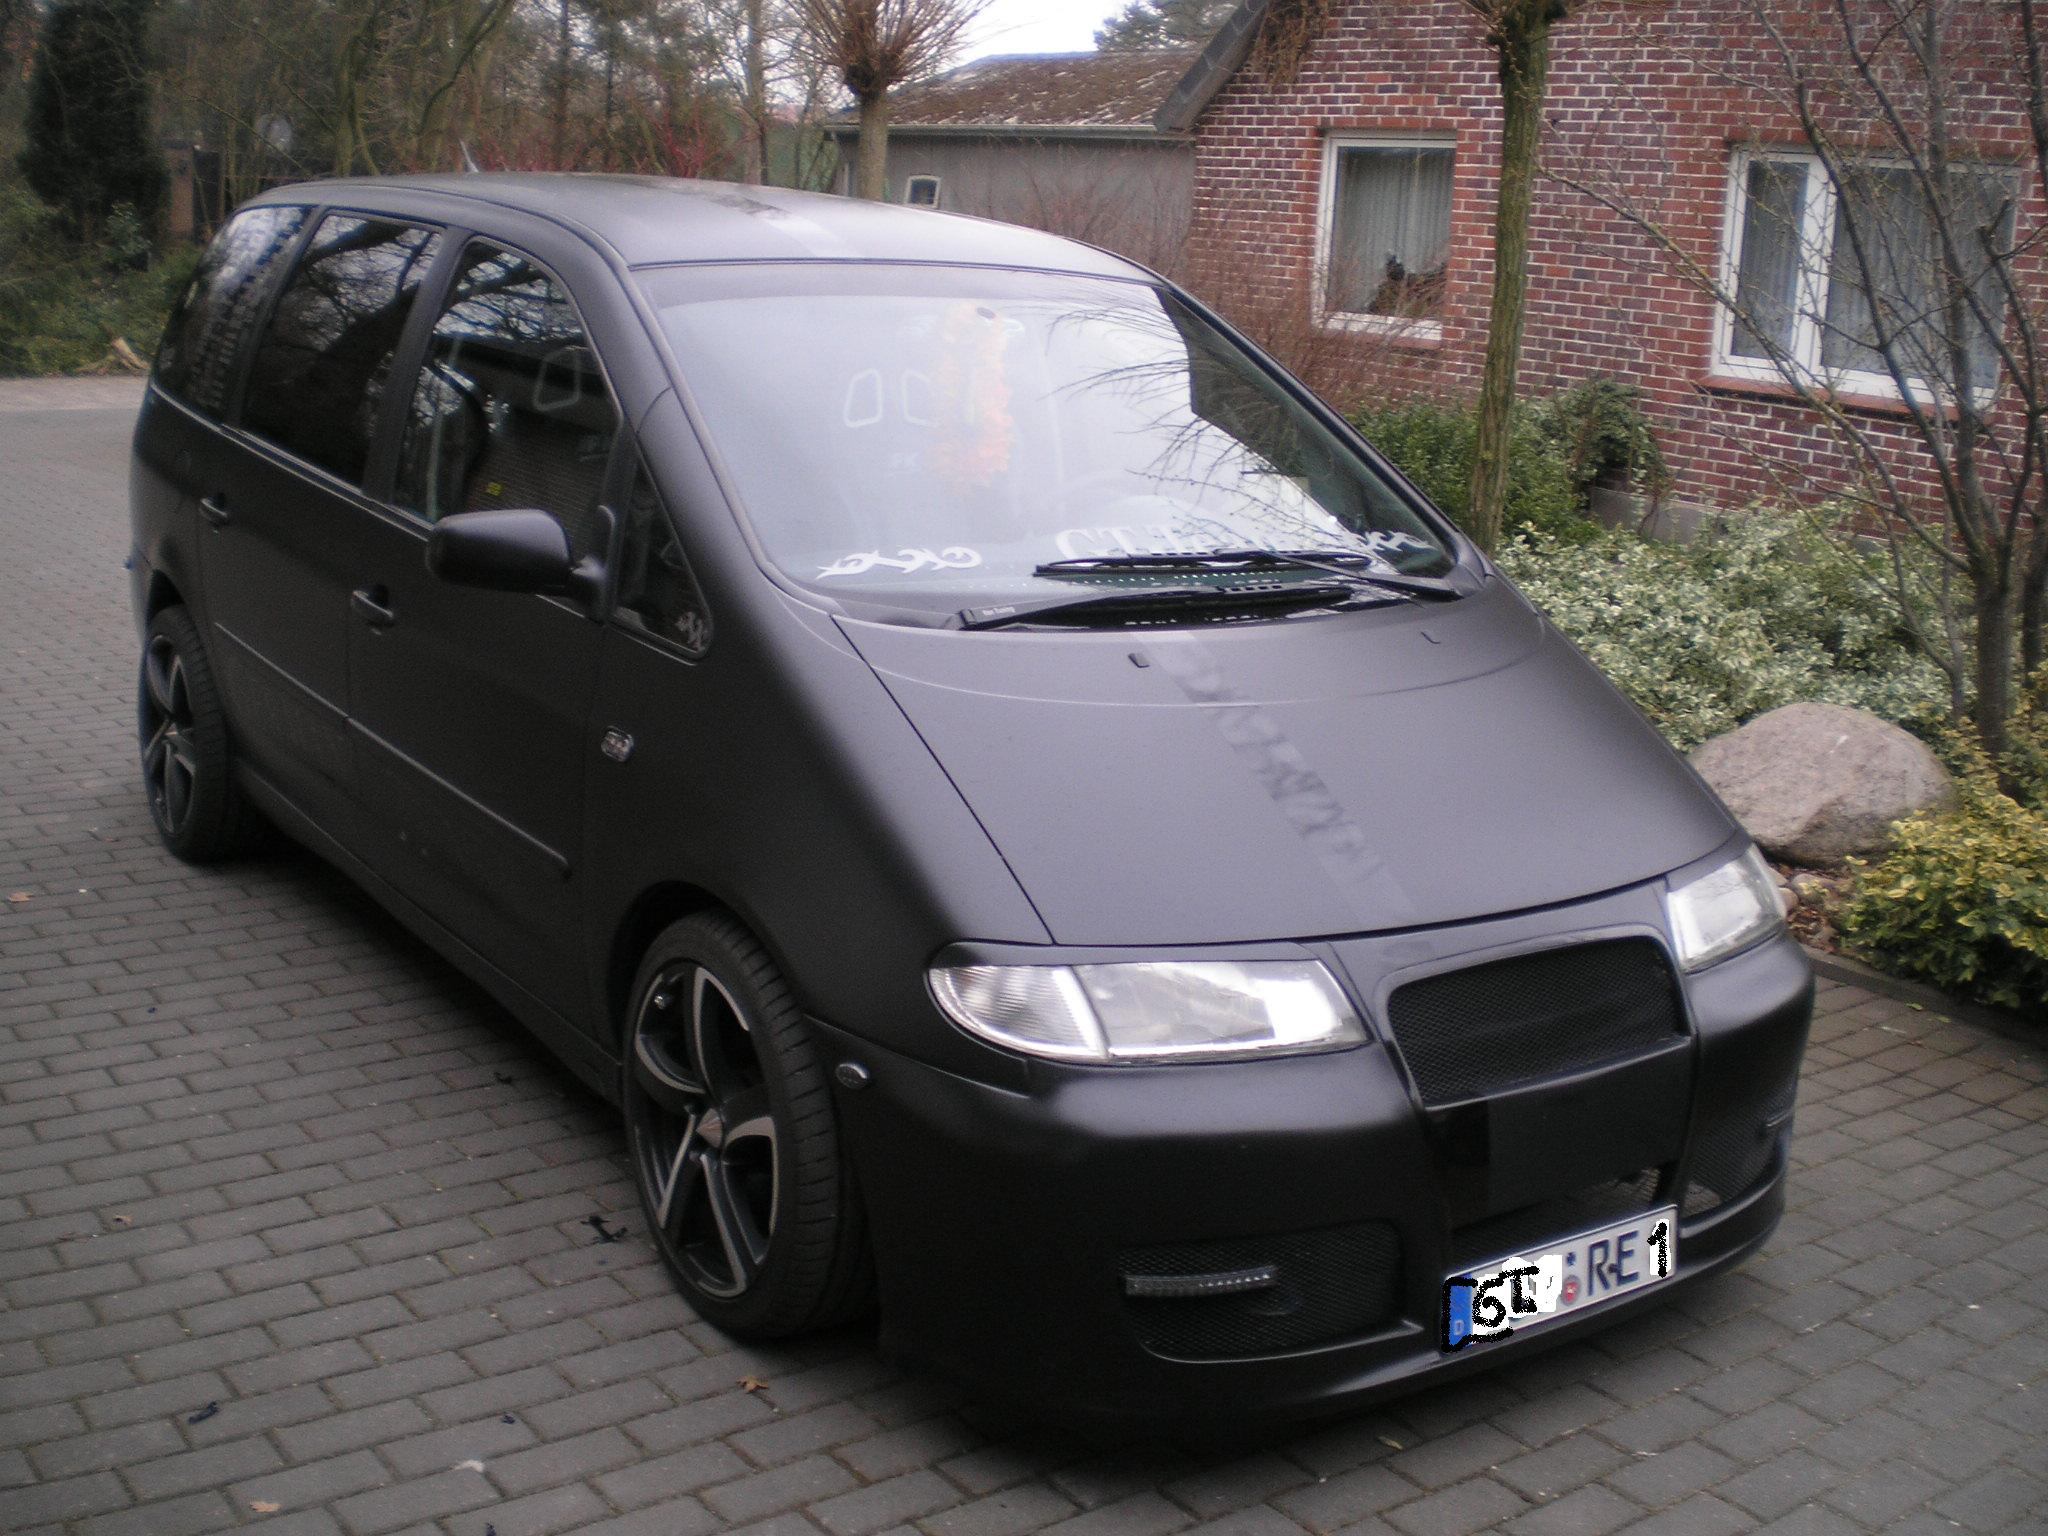 auto seat alhambra tdi deine automeile. Black Bedroom Furniture Sets. Home Design Ideas